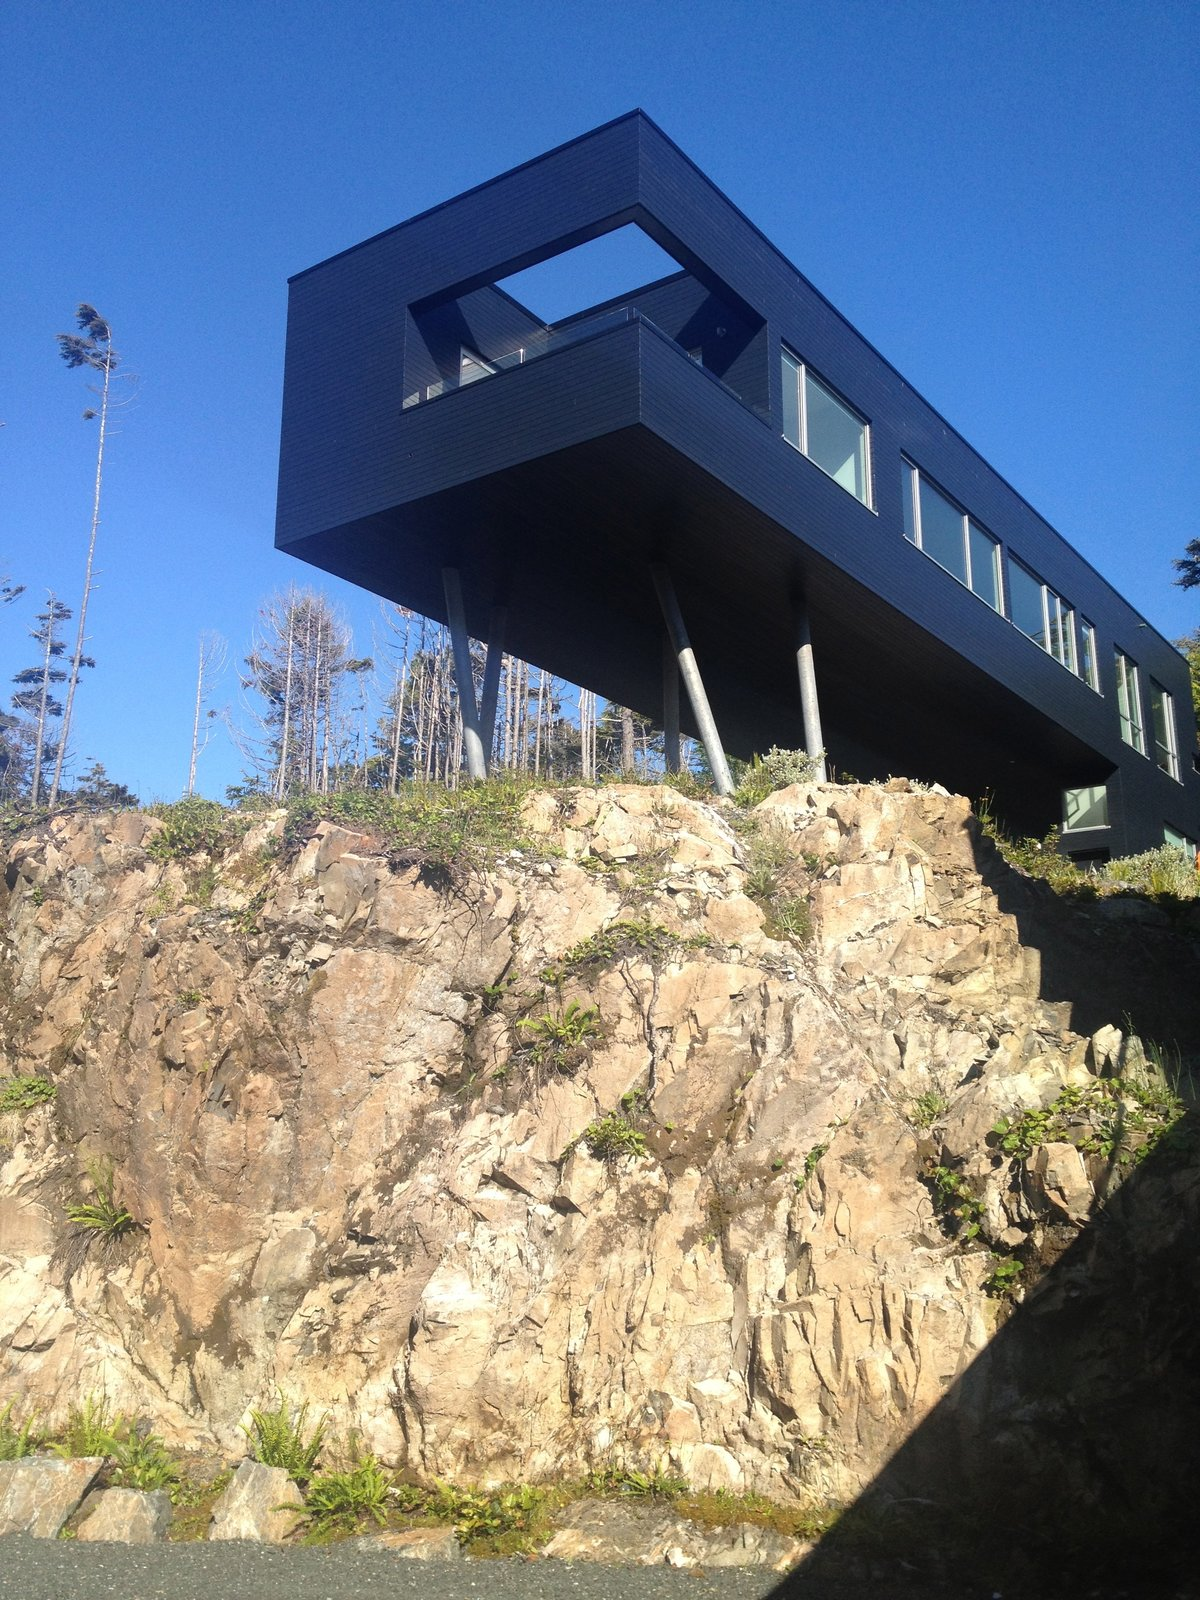 The L-shaped secondary building perches over a craggy escarpment. It offers the best vantage point for taking in the moss-planted roof, forest, and ocean.  Prefab by Low Junjie from A Giant, 20-Module Prefab Perched Across a Coastal Site in British Columbia